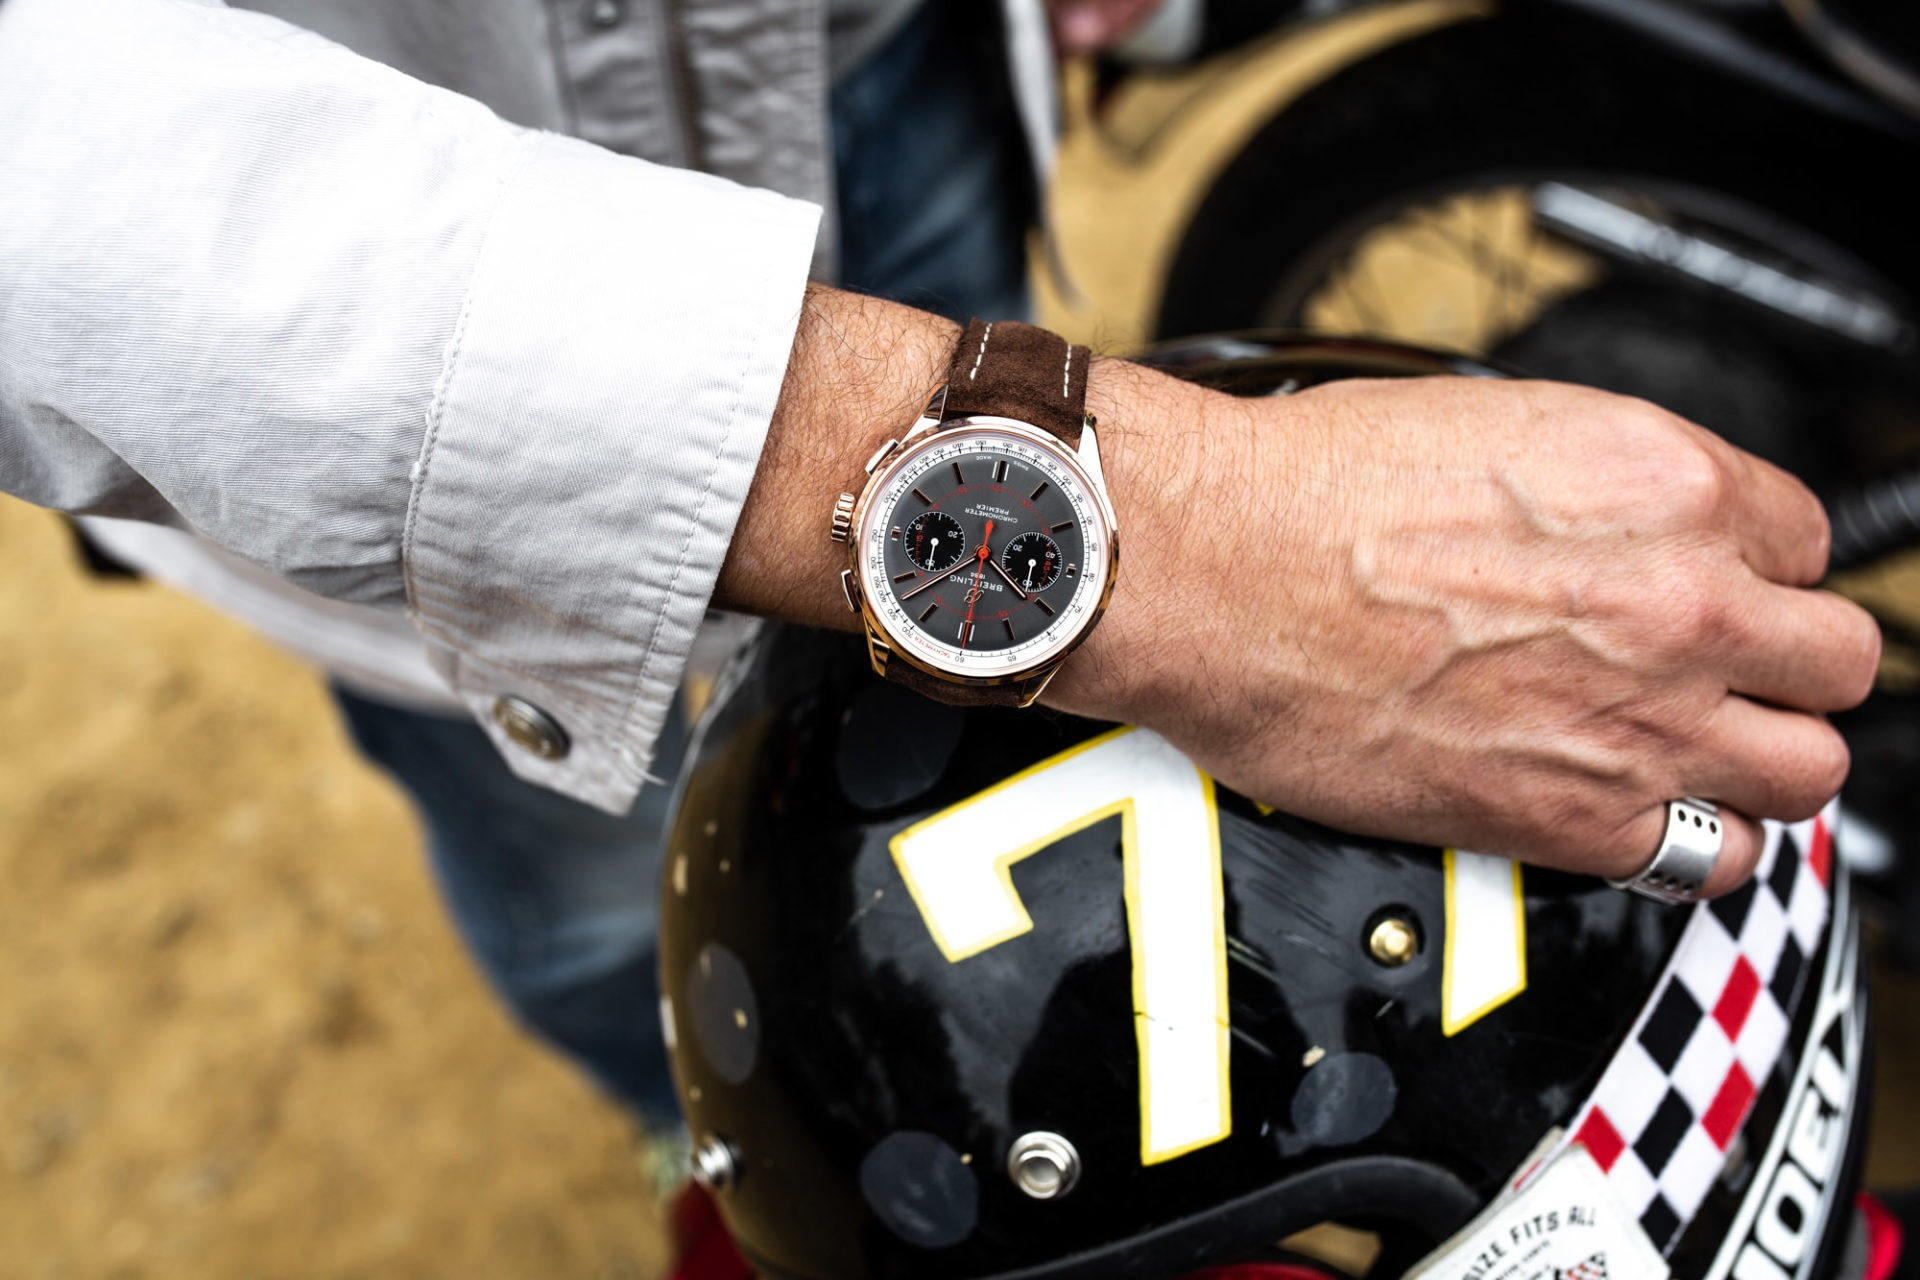 Breitling Premier B01 Wheels and Waves Limited Edition